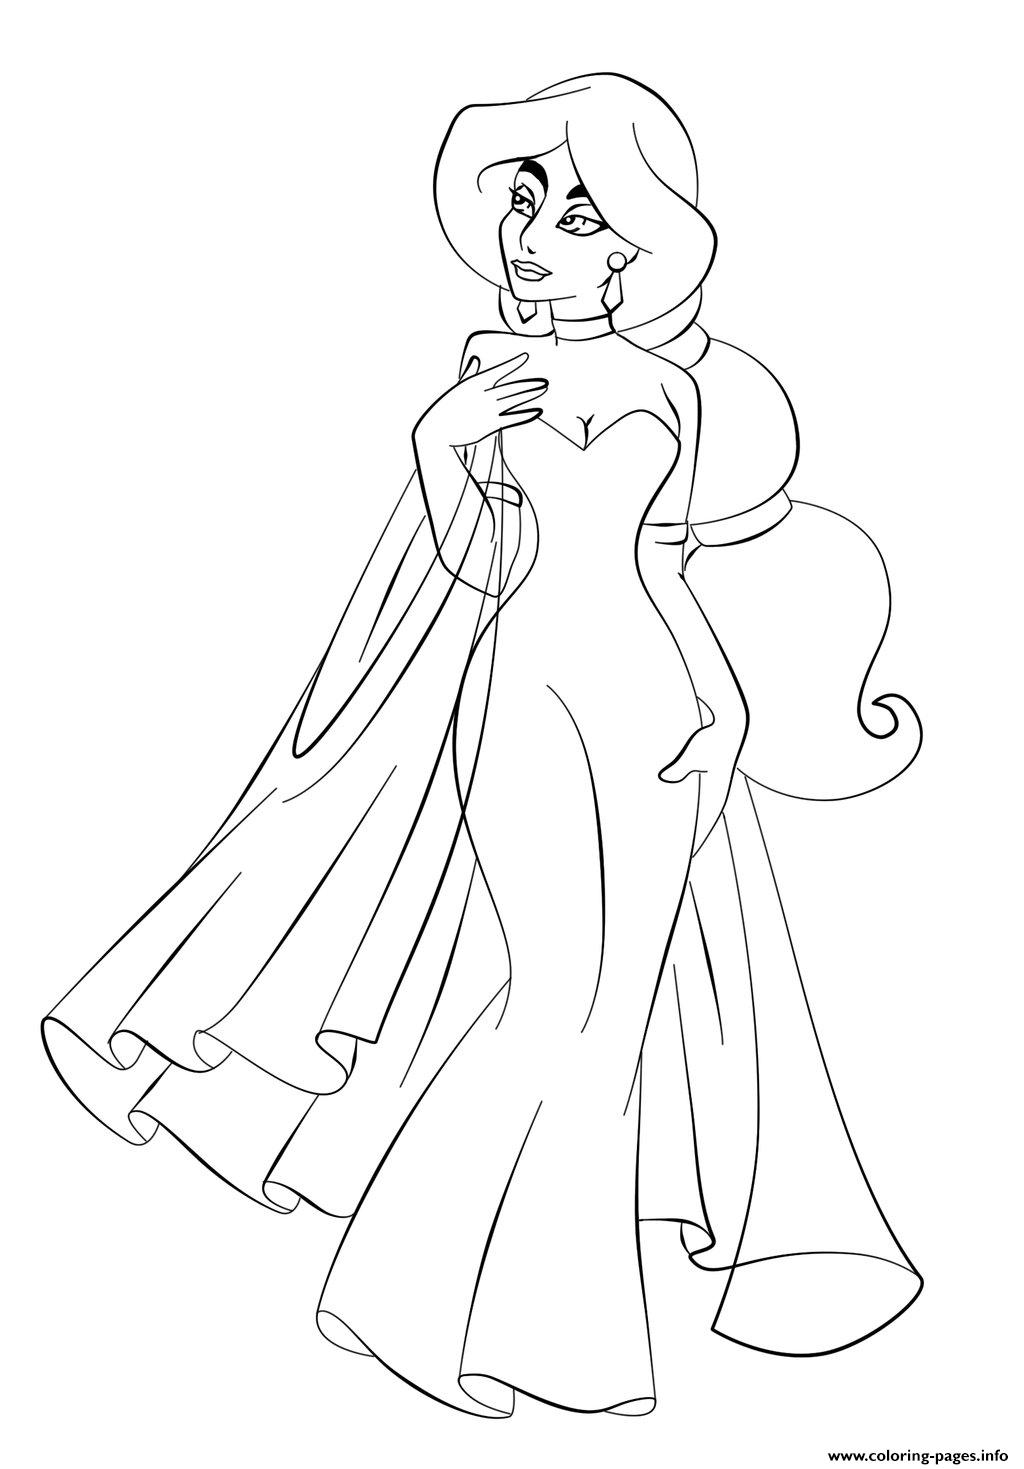 princess gown coloring pages - photo#16